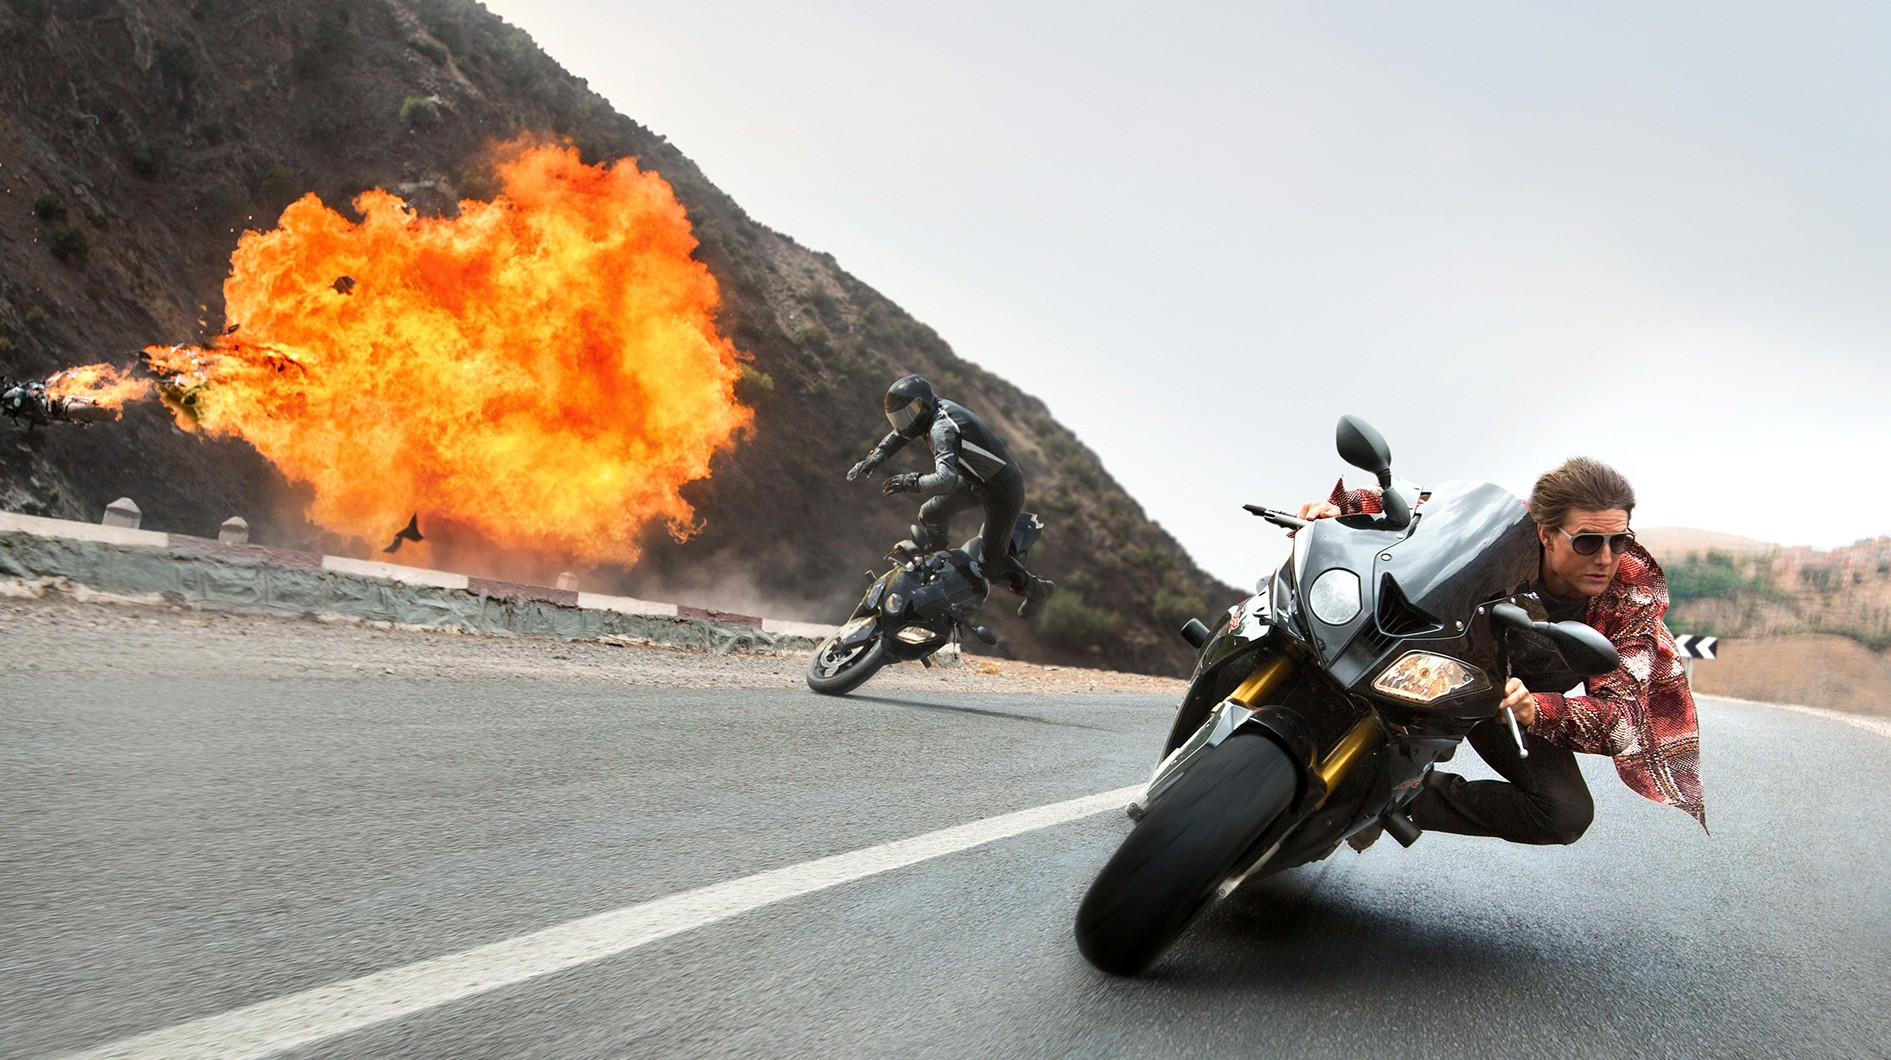 https://cinemaplanet.pt/wp-content/uploads/2016/09/mission-impossible-rogue-nation-motorcycle-explosion_1920.0-e1433808025568.jpg